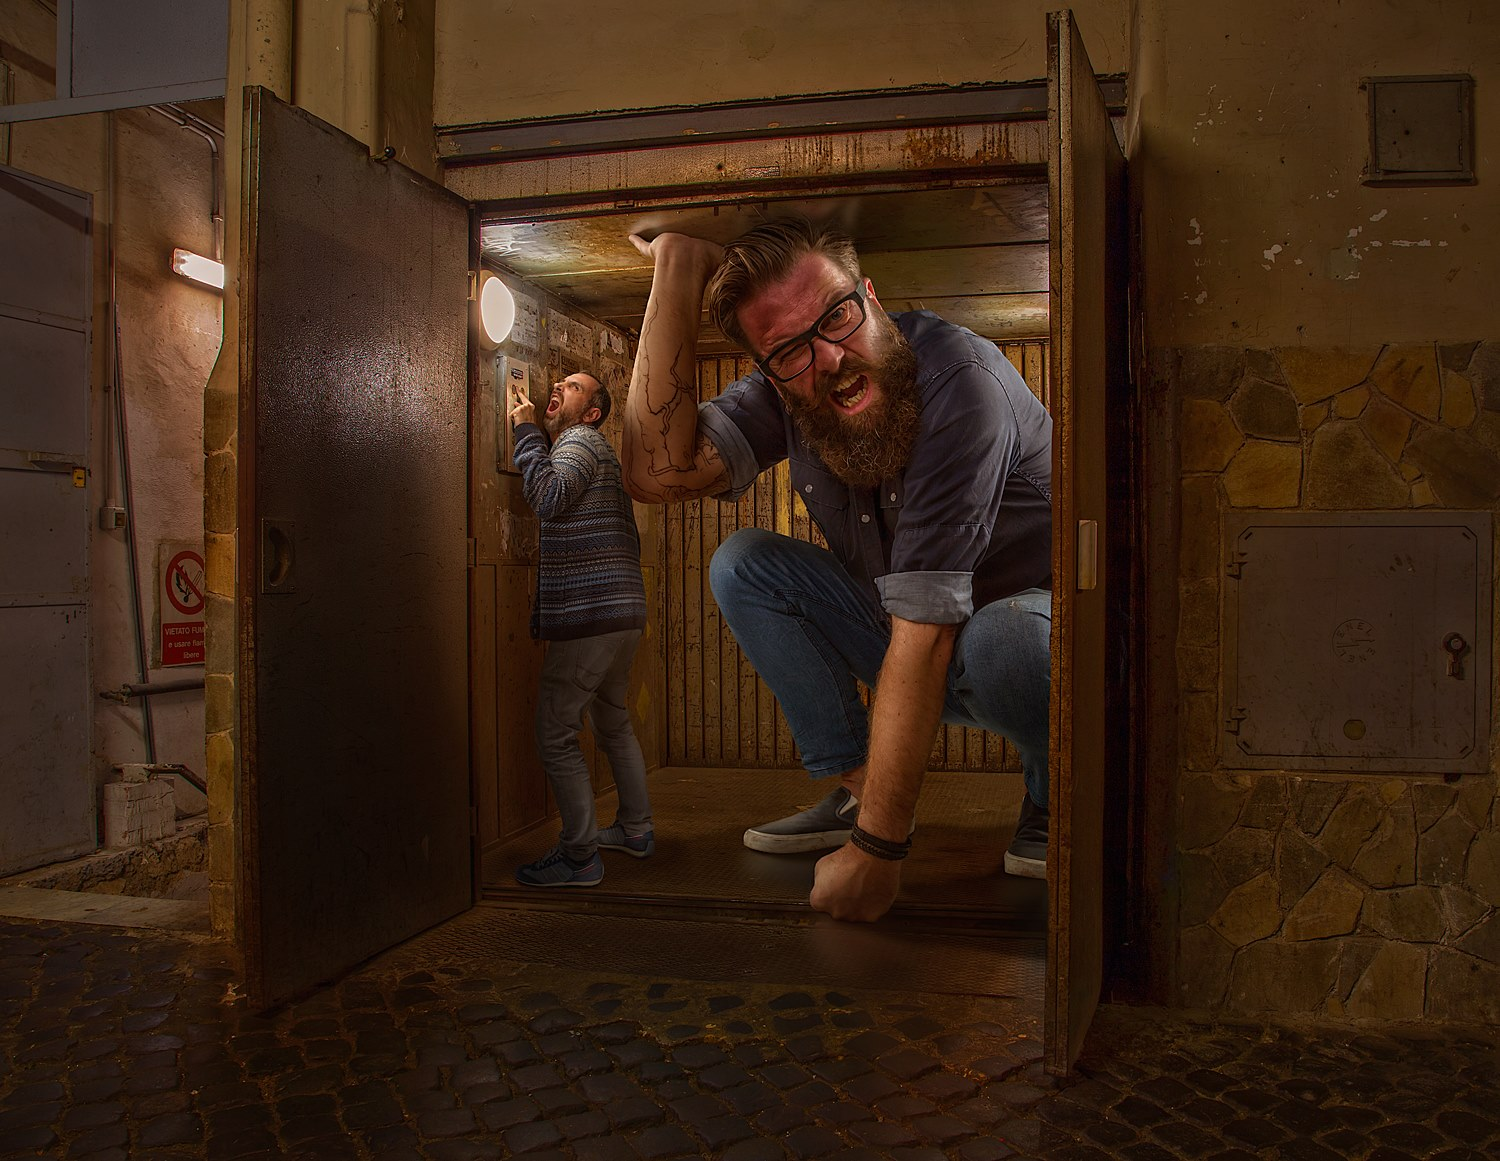 16-Troll-in-the-Lift-Adrian-Sommeling-Surreal-Photo-Manipulation-with-a-Son-s-Help-www-designstack-co